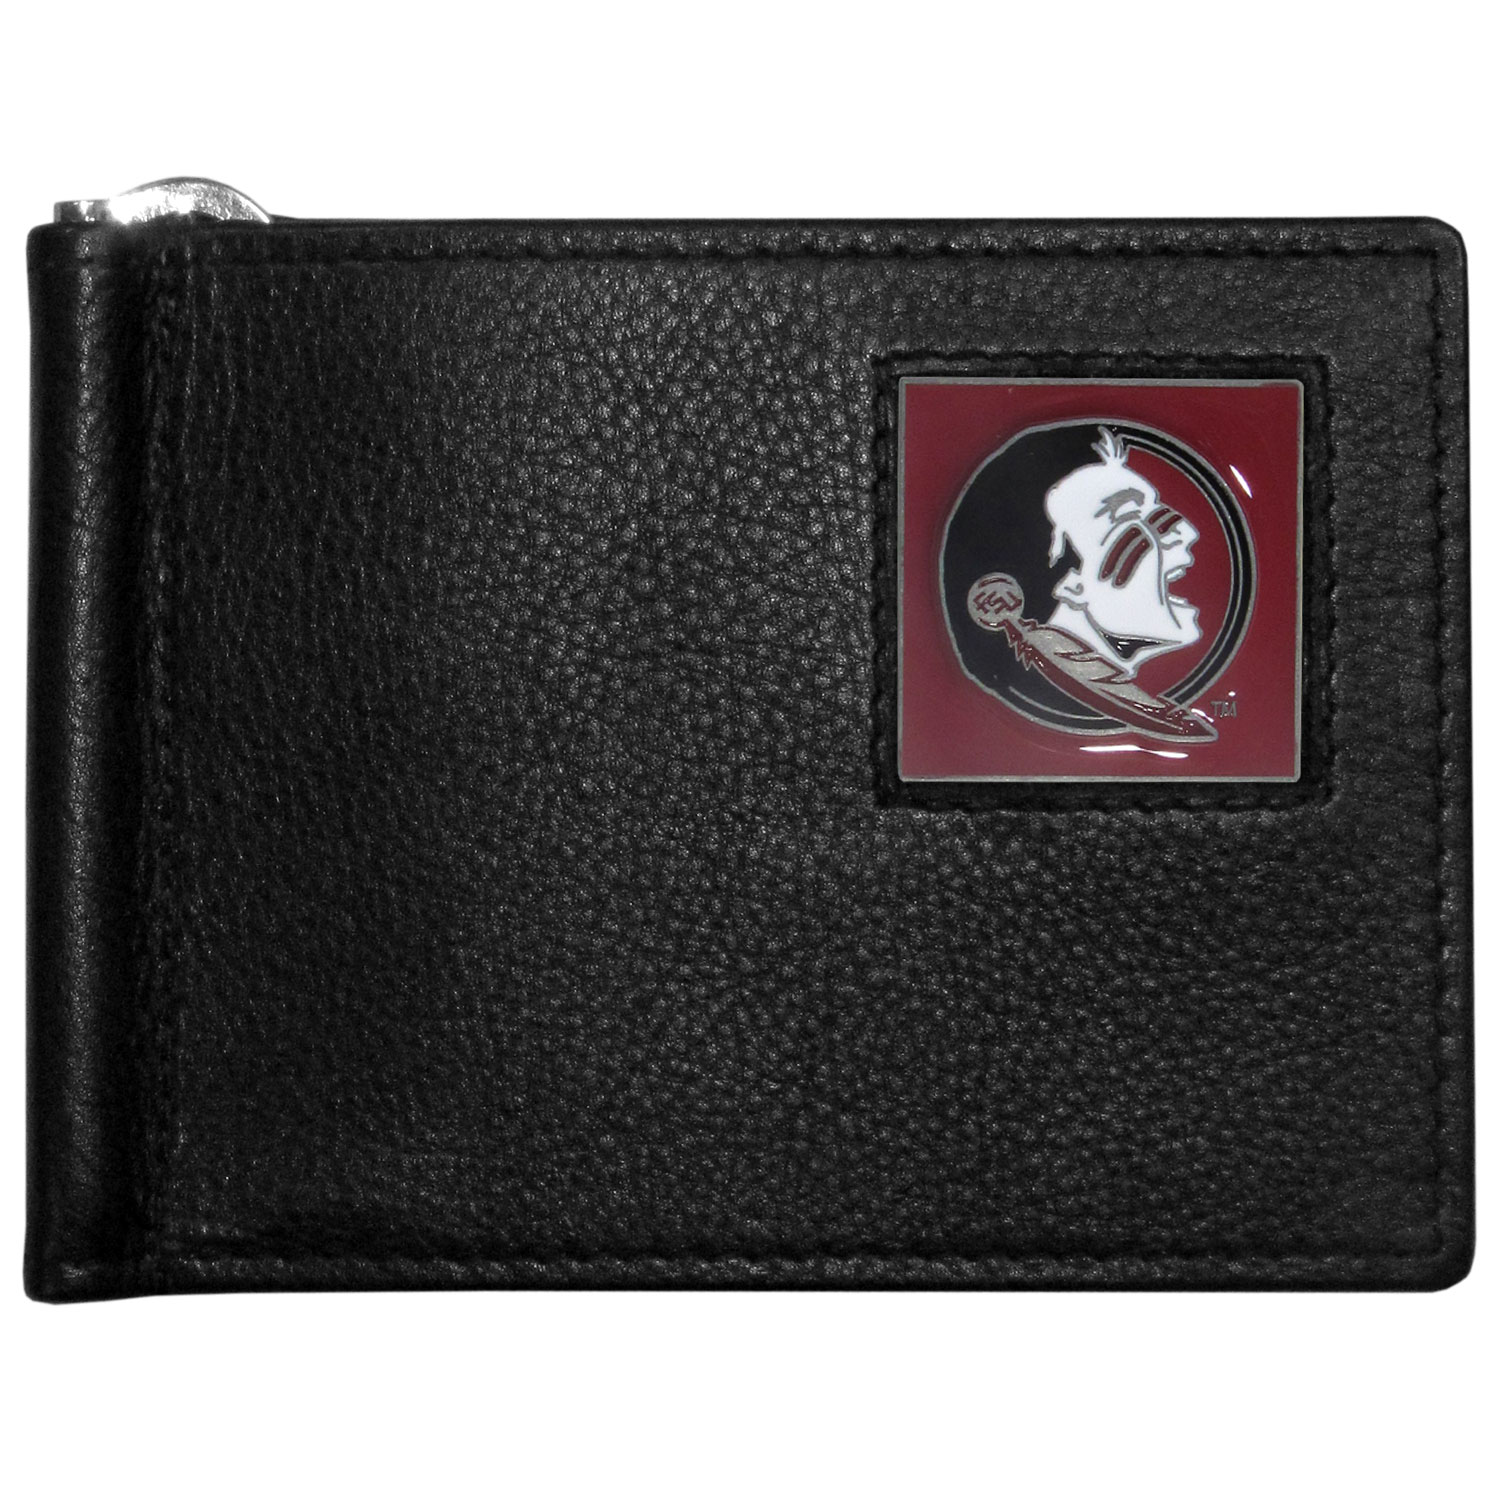 Florida St. Seminoles Leather Bill Clip Wallet - This cool new style wallet features an inner, metal bill clip that lips up for easy access. The super slim wallet holds tons of stuff with ample pockets, credit card slots & windowed ID slot. The wallet is made of genuine fine grain leather and it finished with a metal Florida St. Seminoles emblem. The wallet is shipped in gift box packaging.